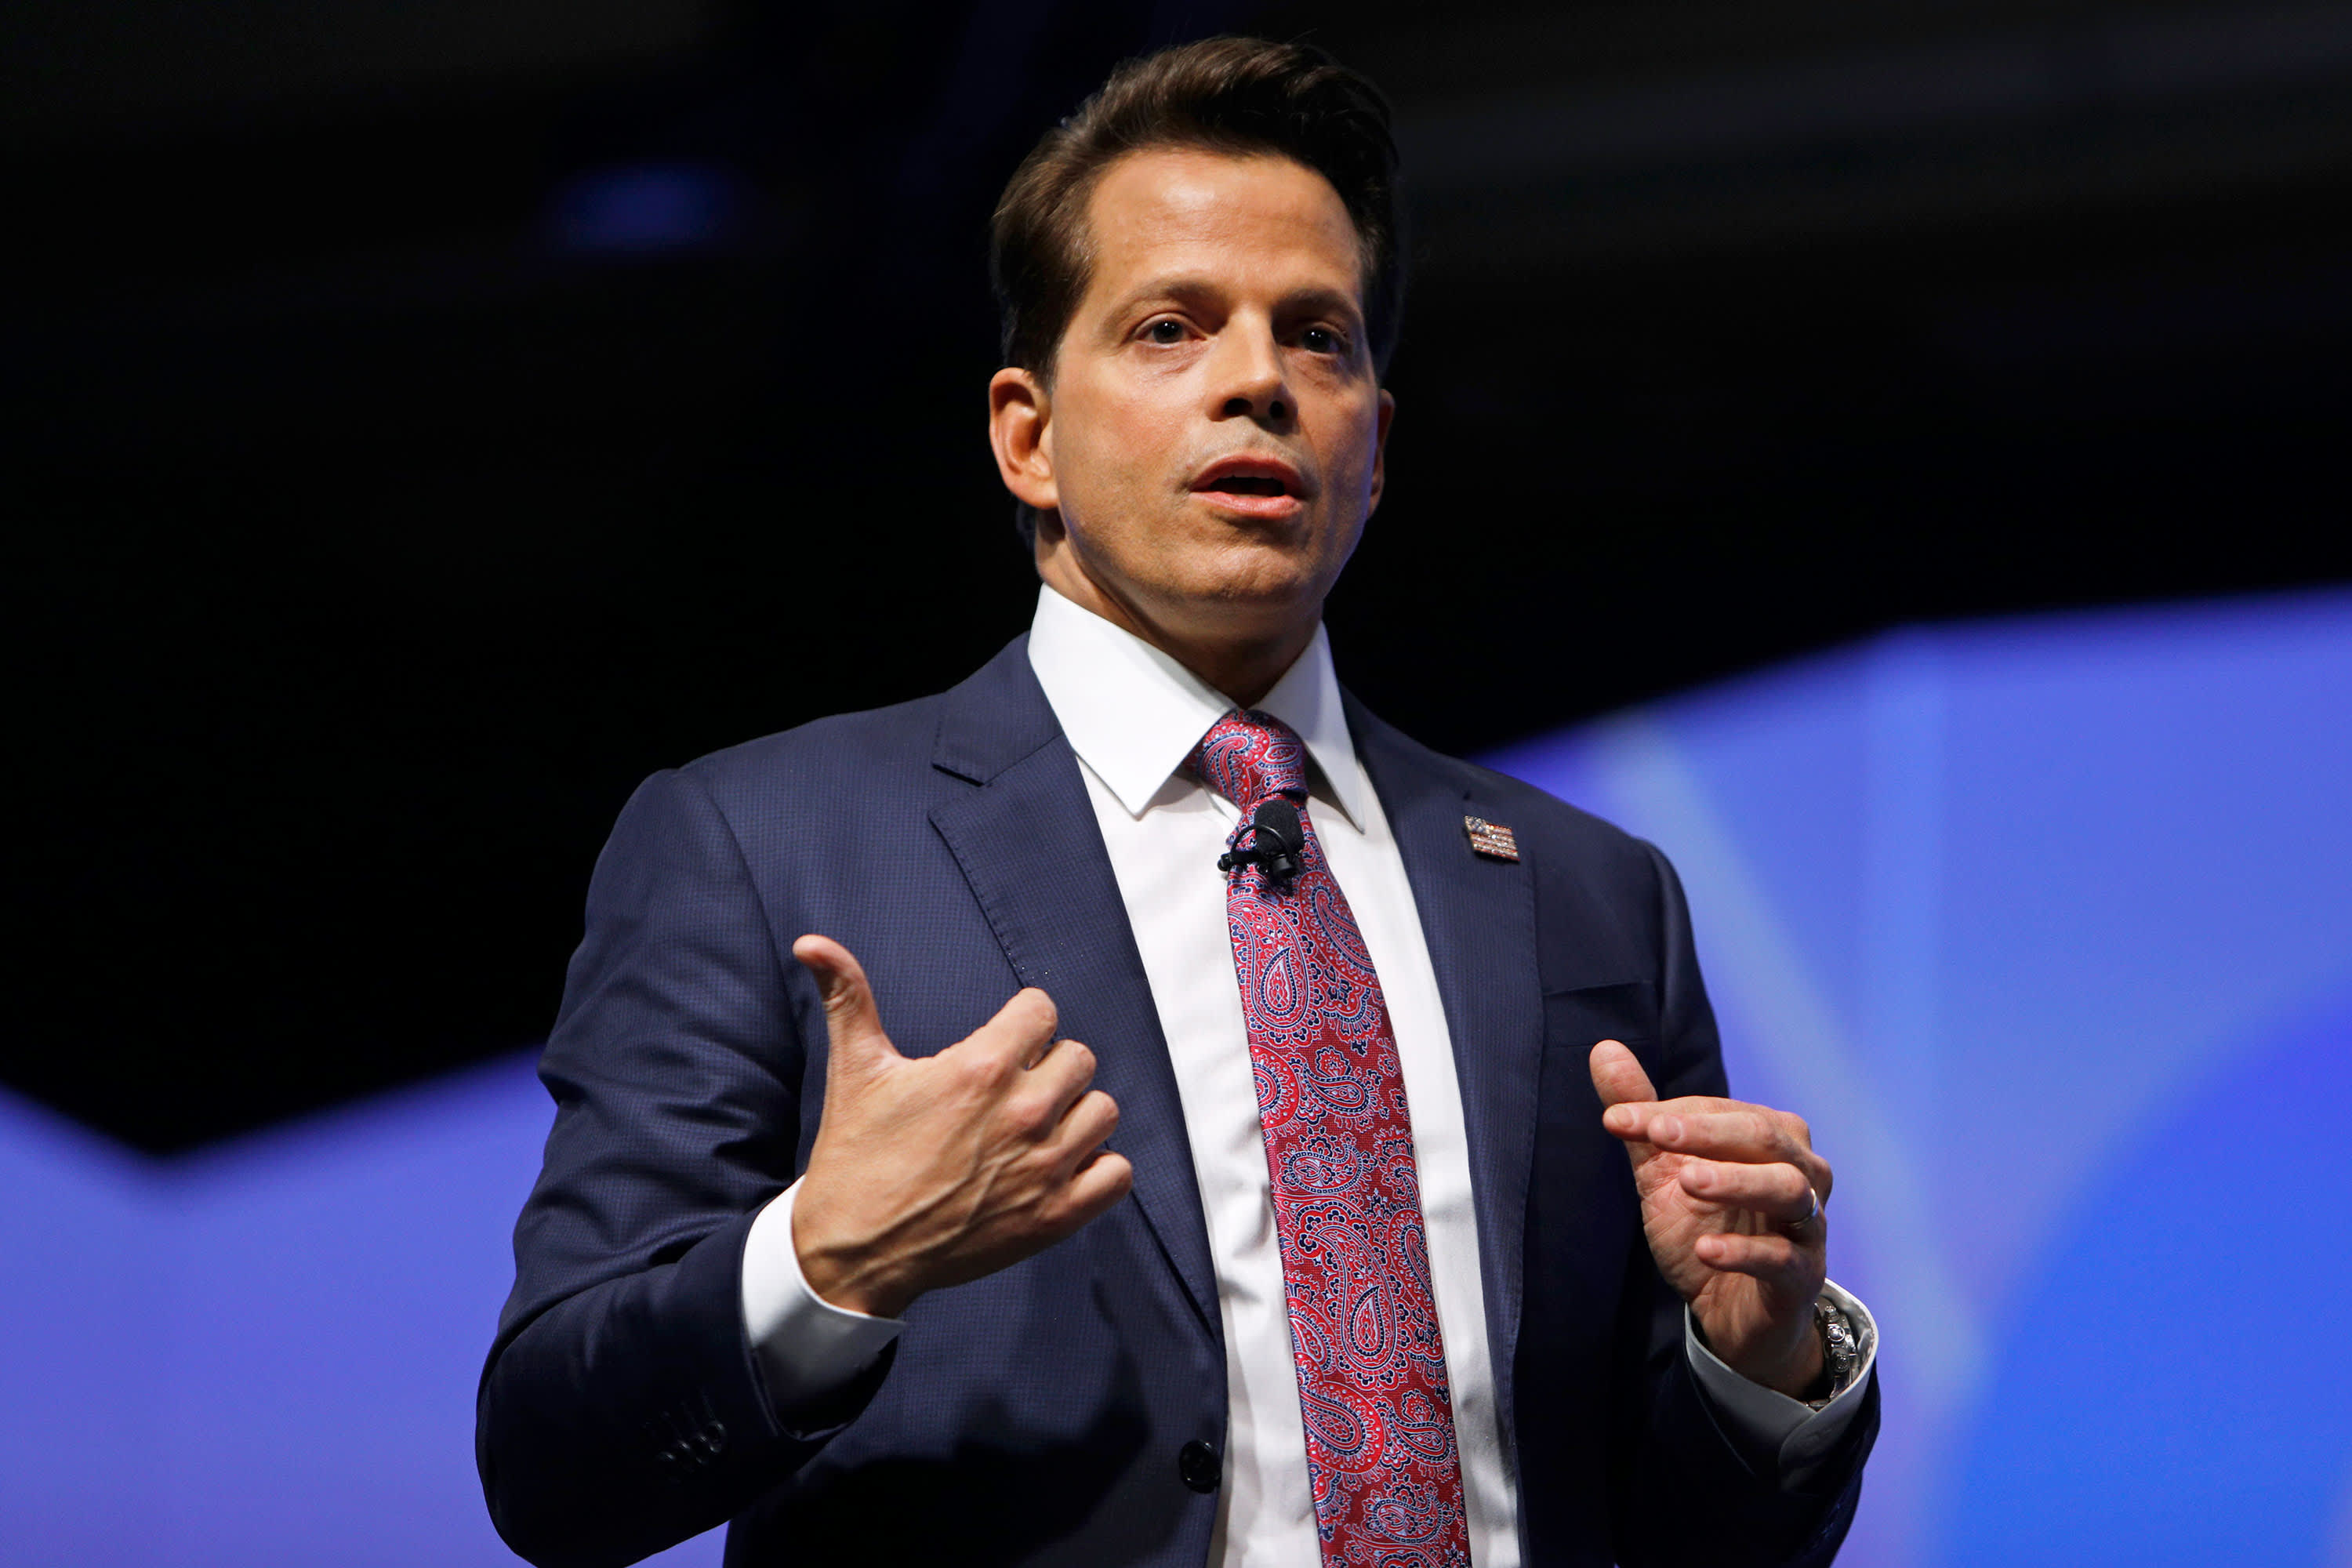 Scaramucci says China's Didi crackdown an assault on capitalism, 'form of political terrorism'